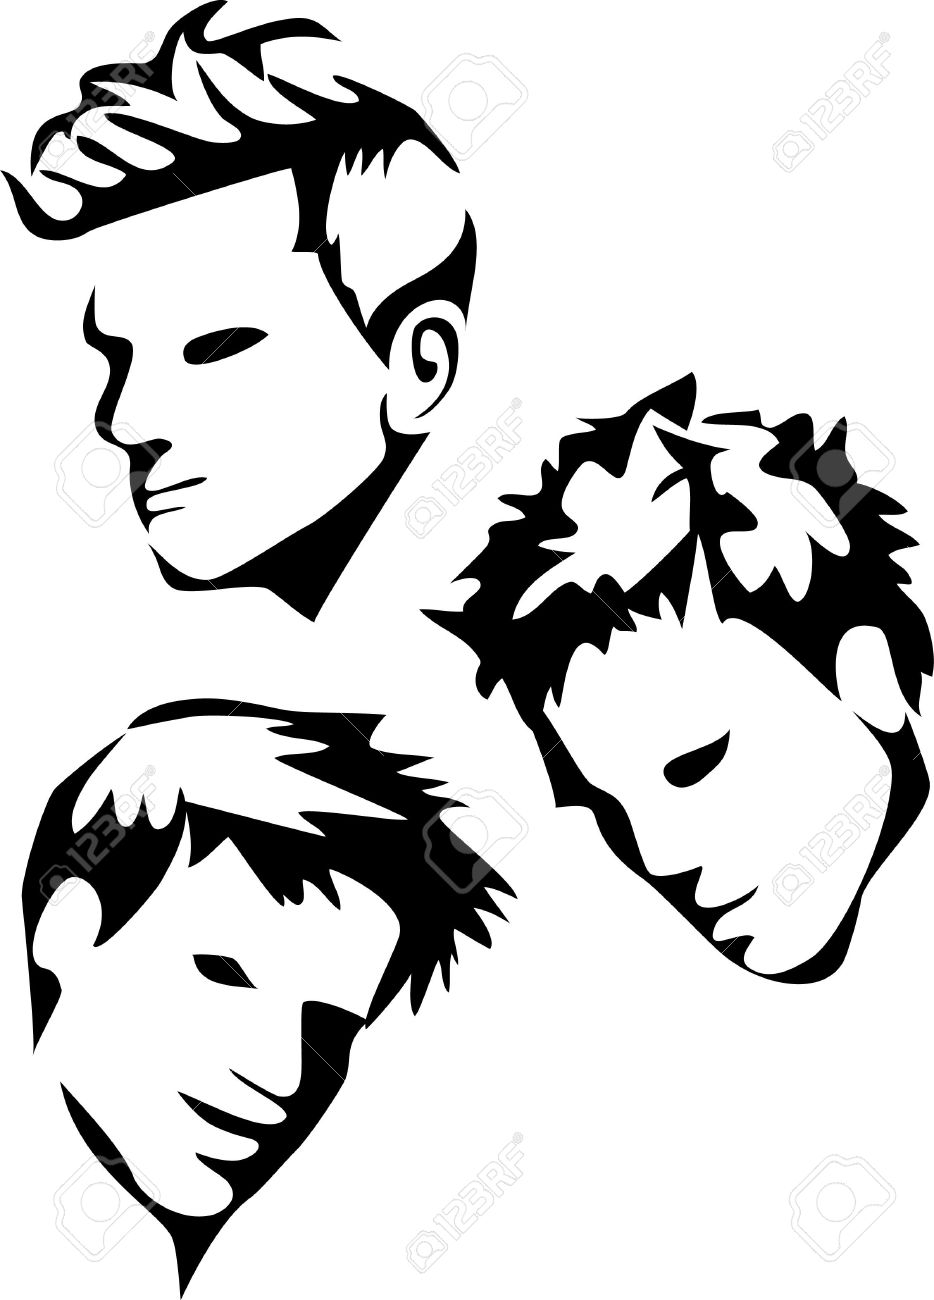 Boys hair style clipart svg black and white download Hairstyles Clipart | Free download best Hairstyles Clipart on ... svg black and white download